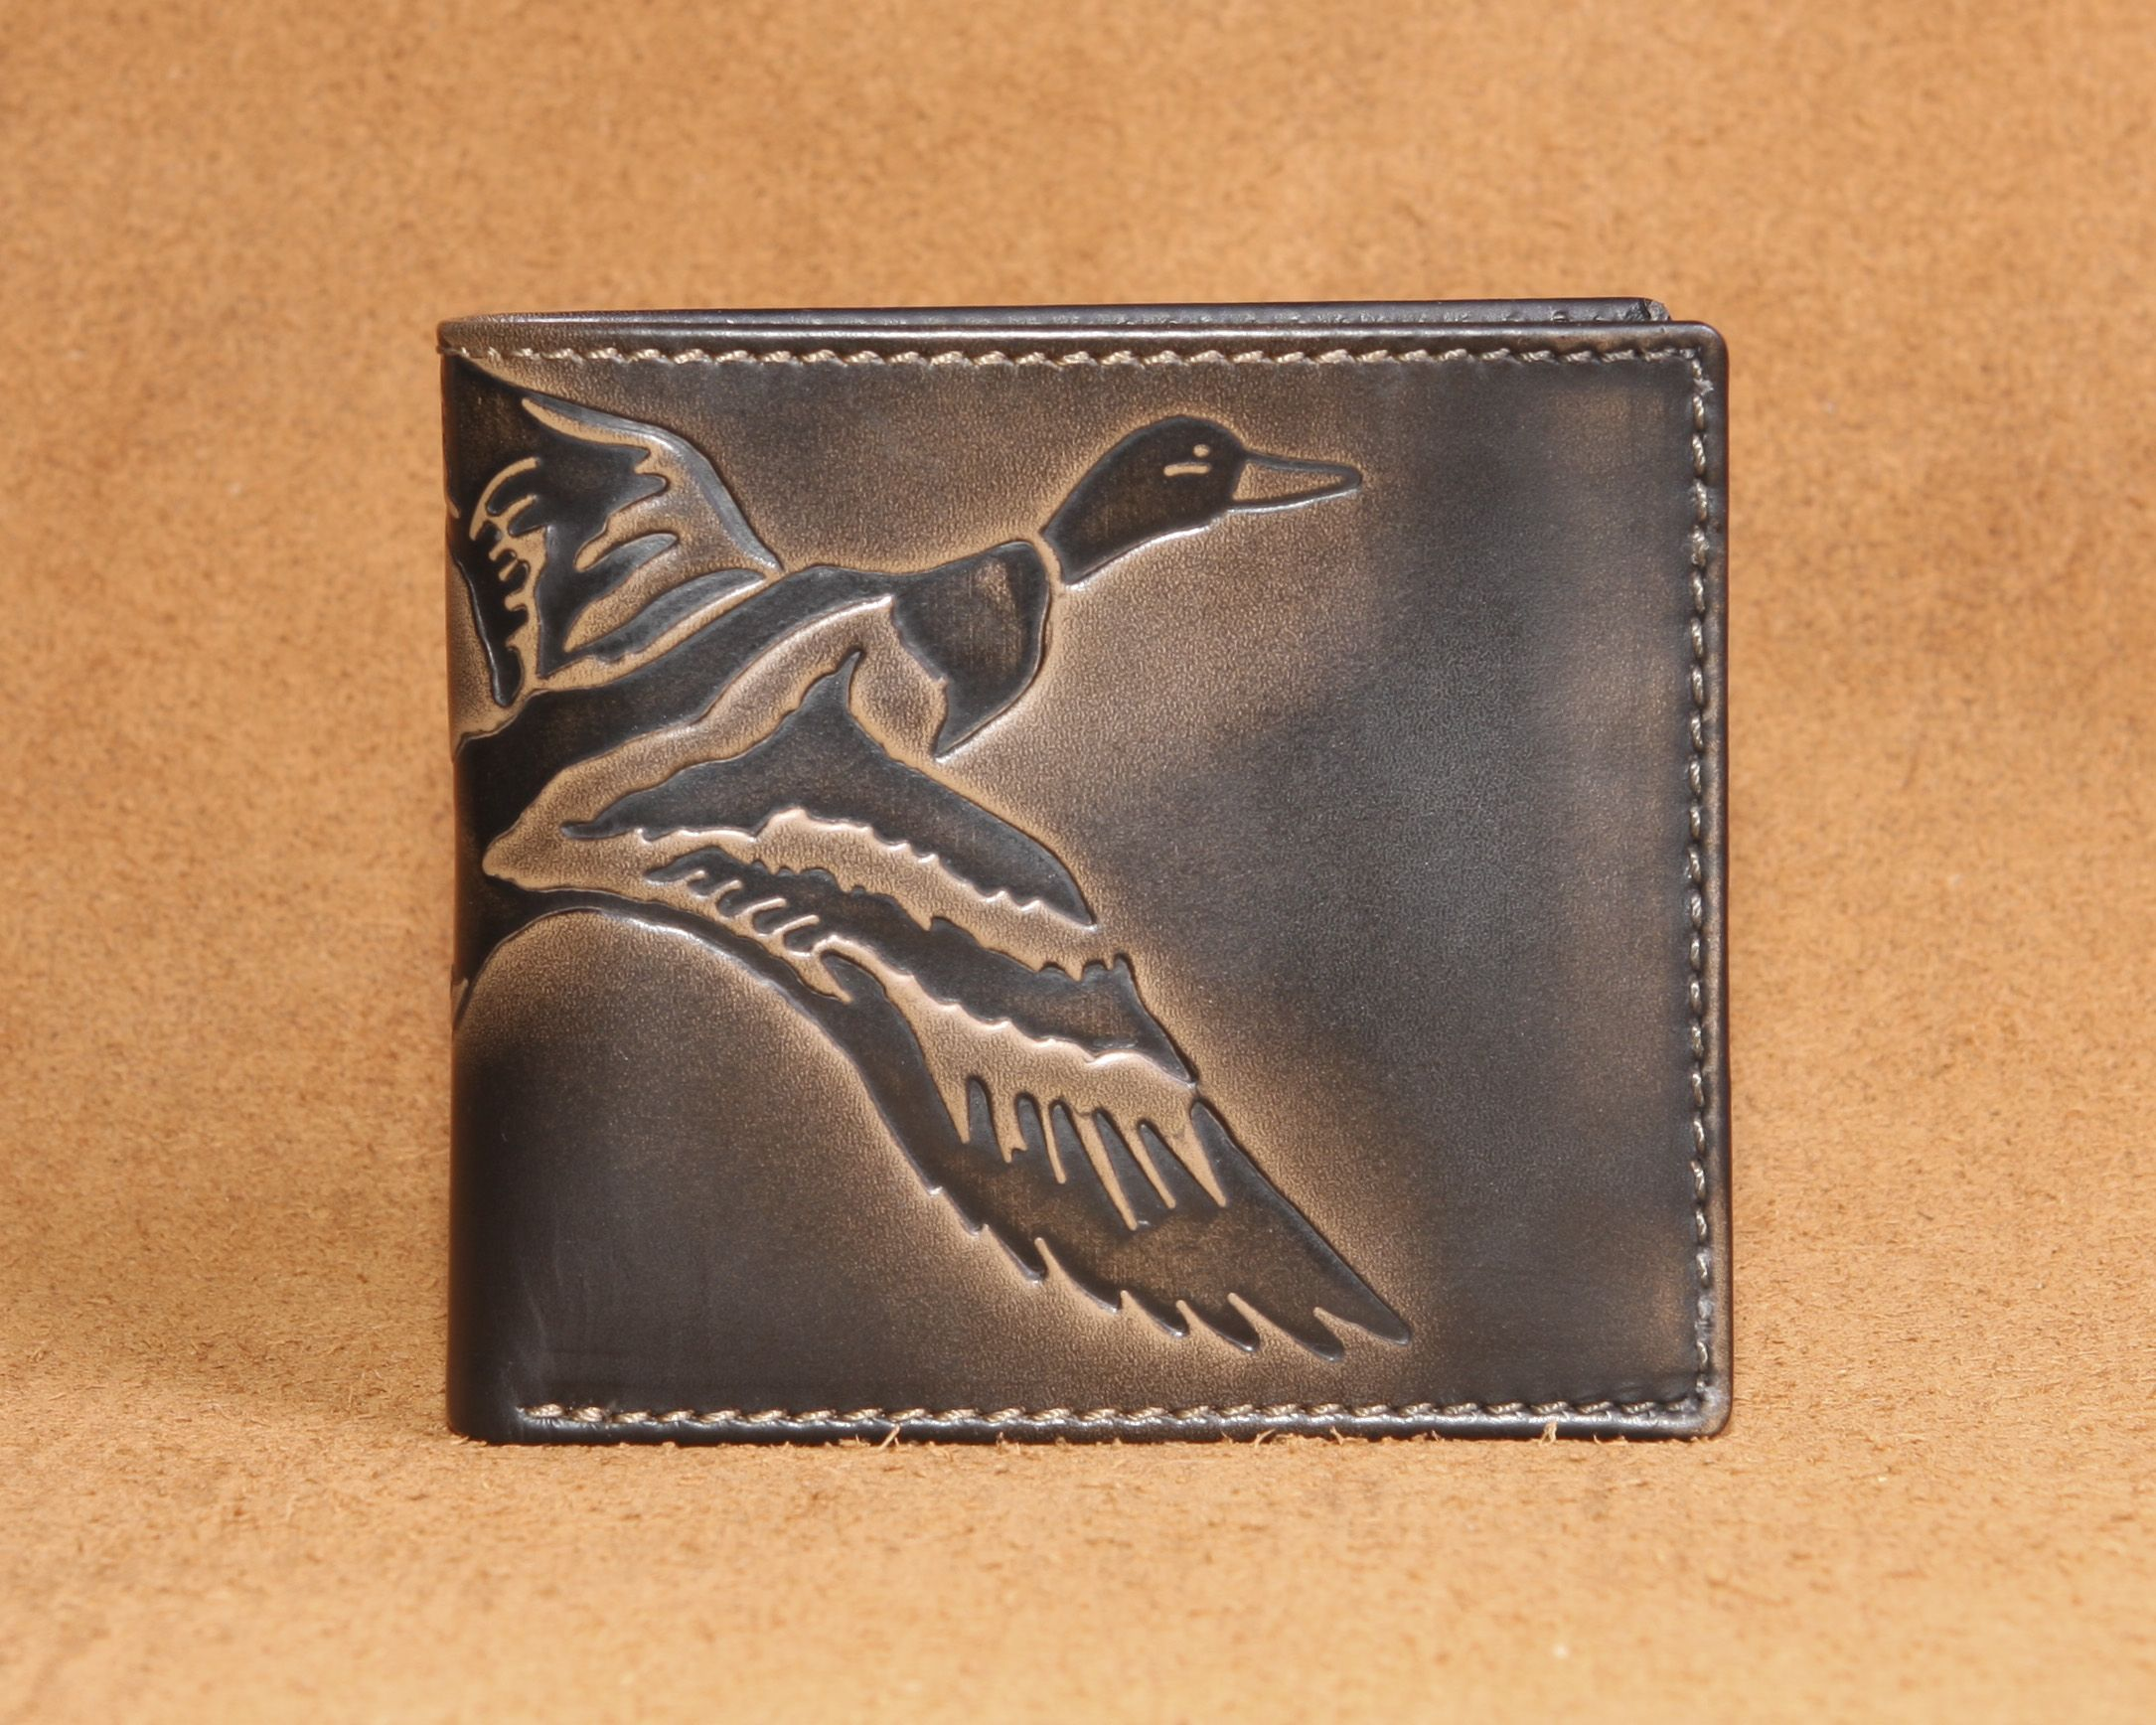 Leather Wallets | For the hubs and I!!! | Pinterest | Gifts, Hunting ...